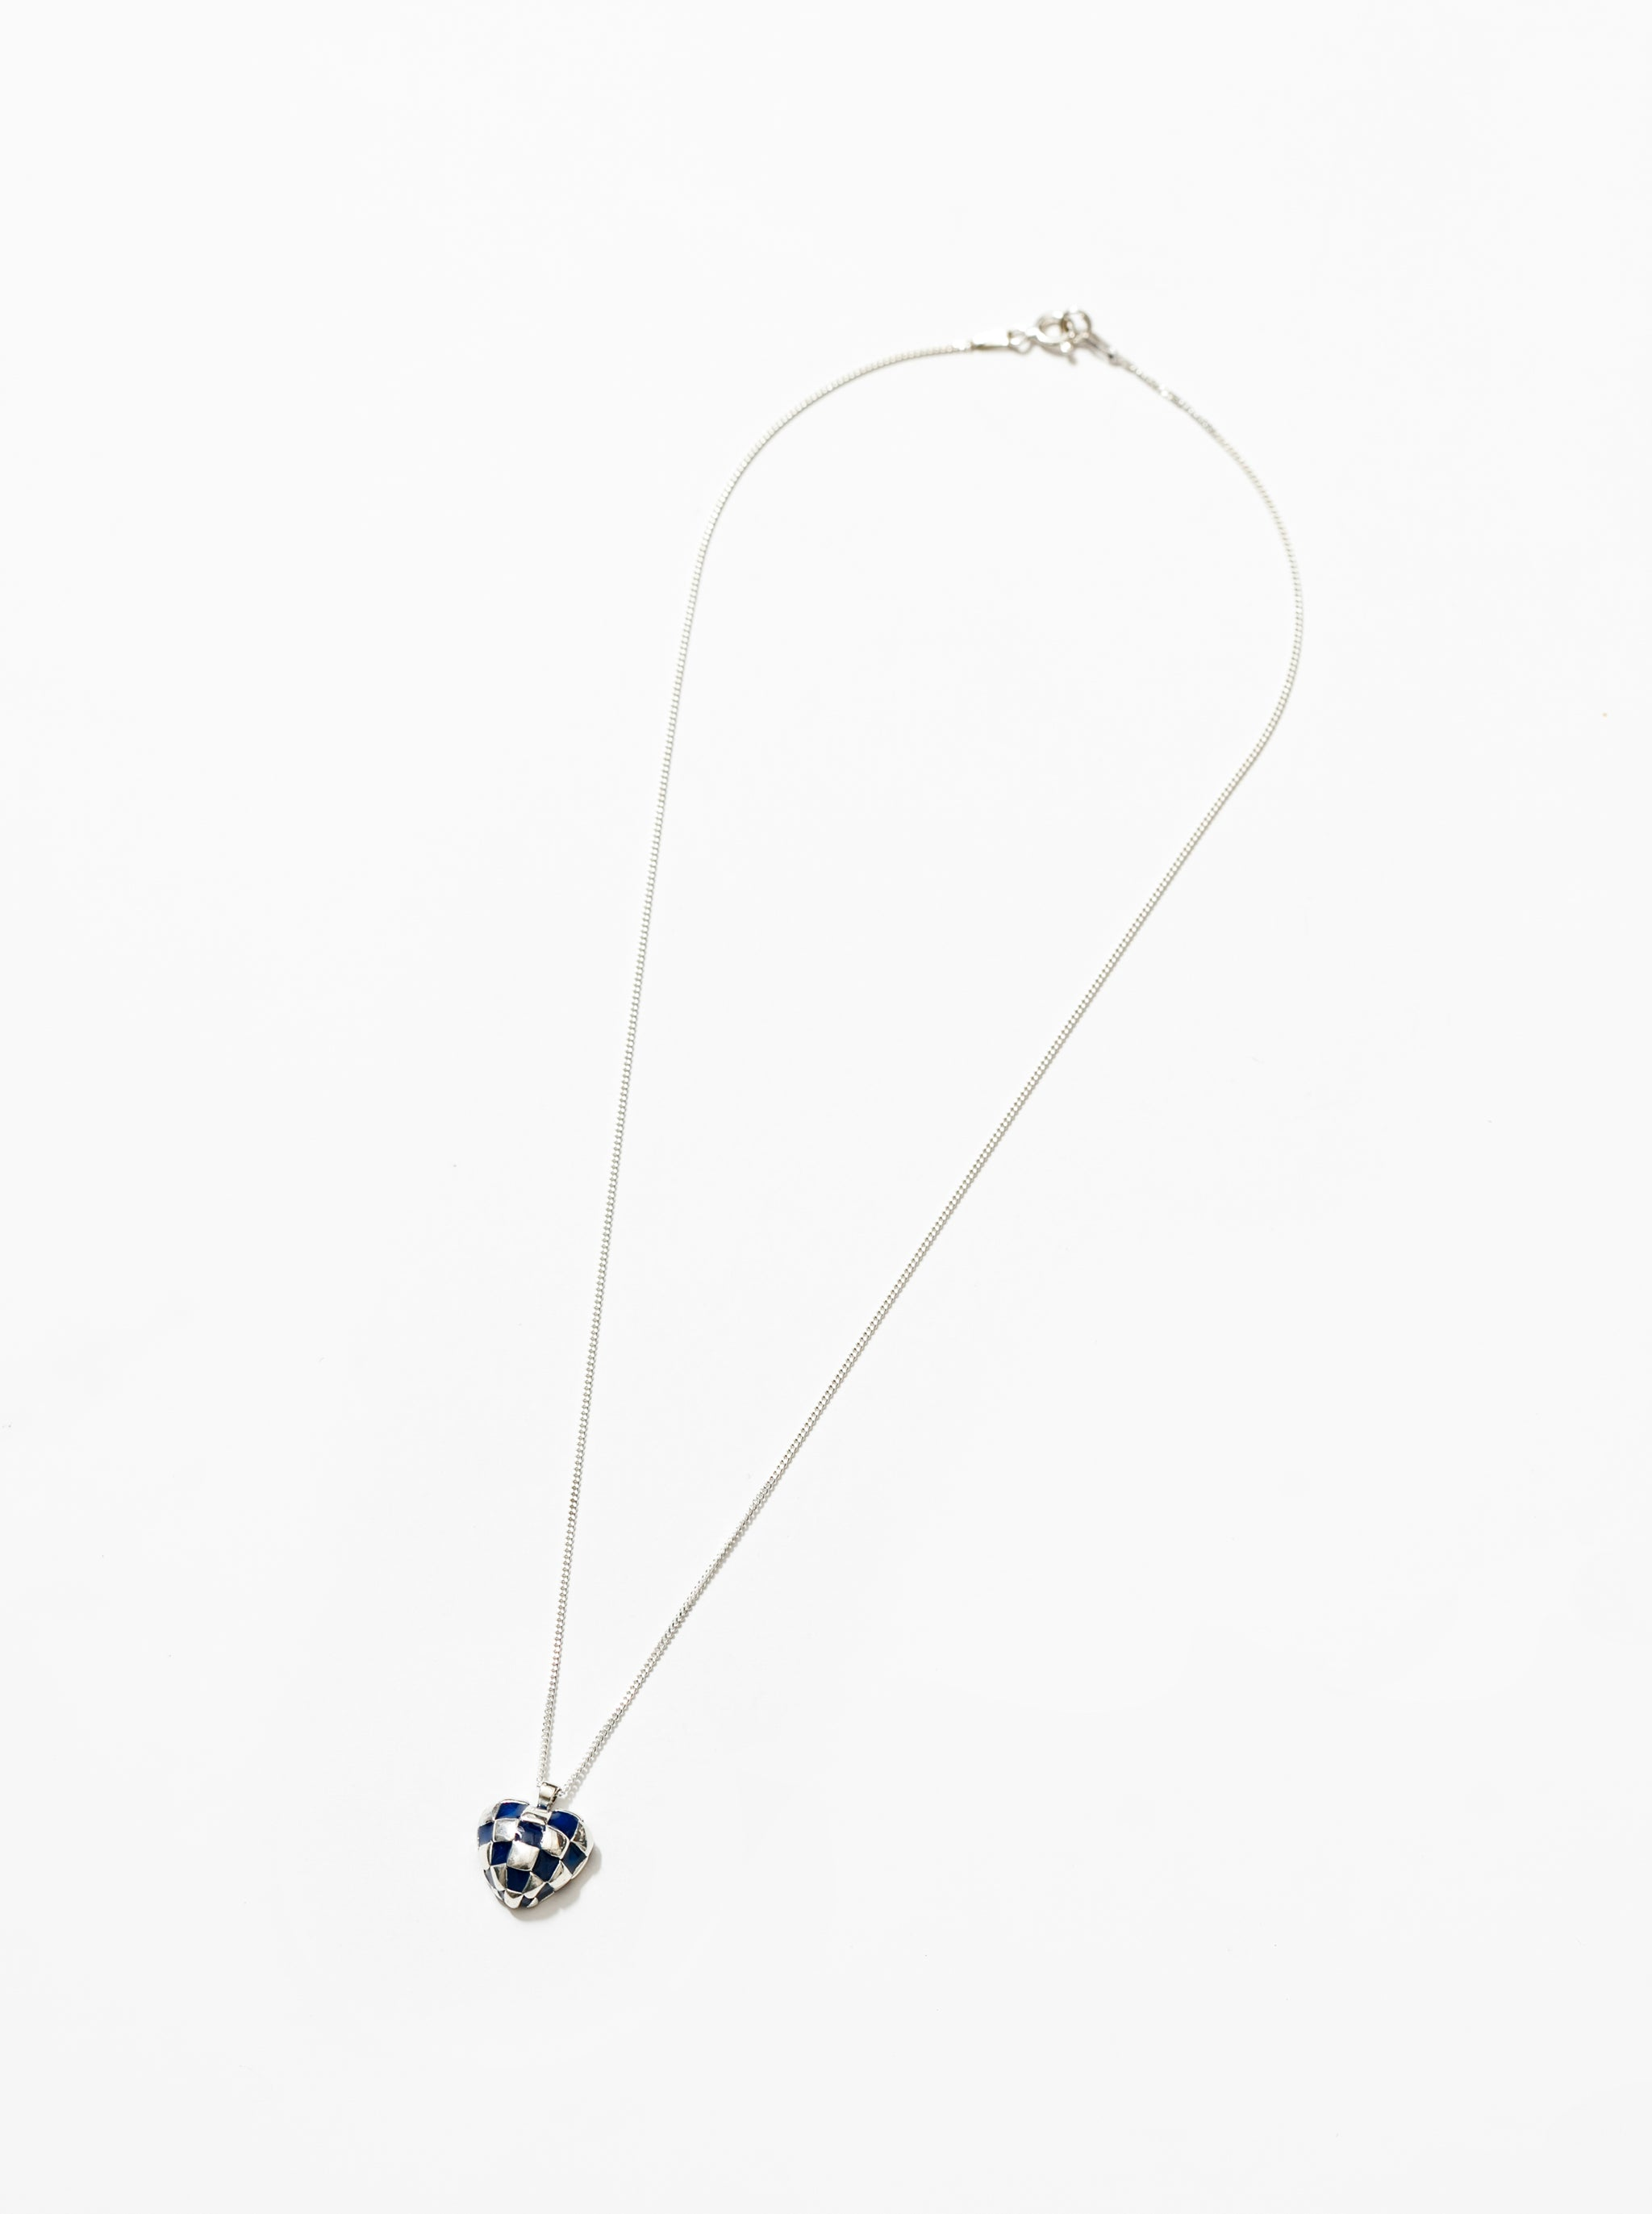 Georgia Necklace in Navy and Sterling Silver